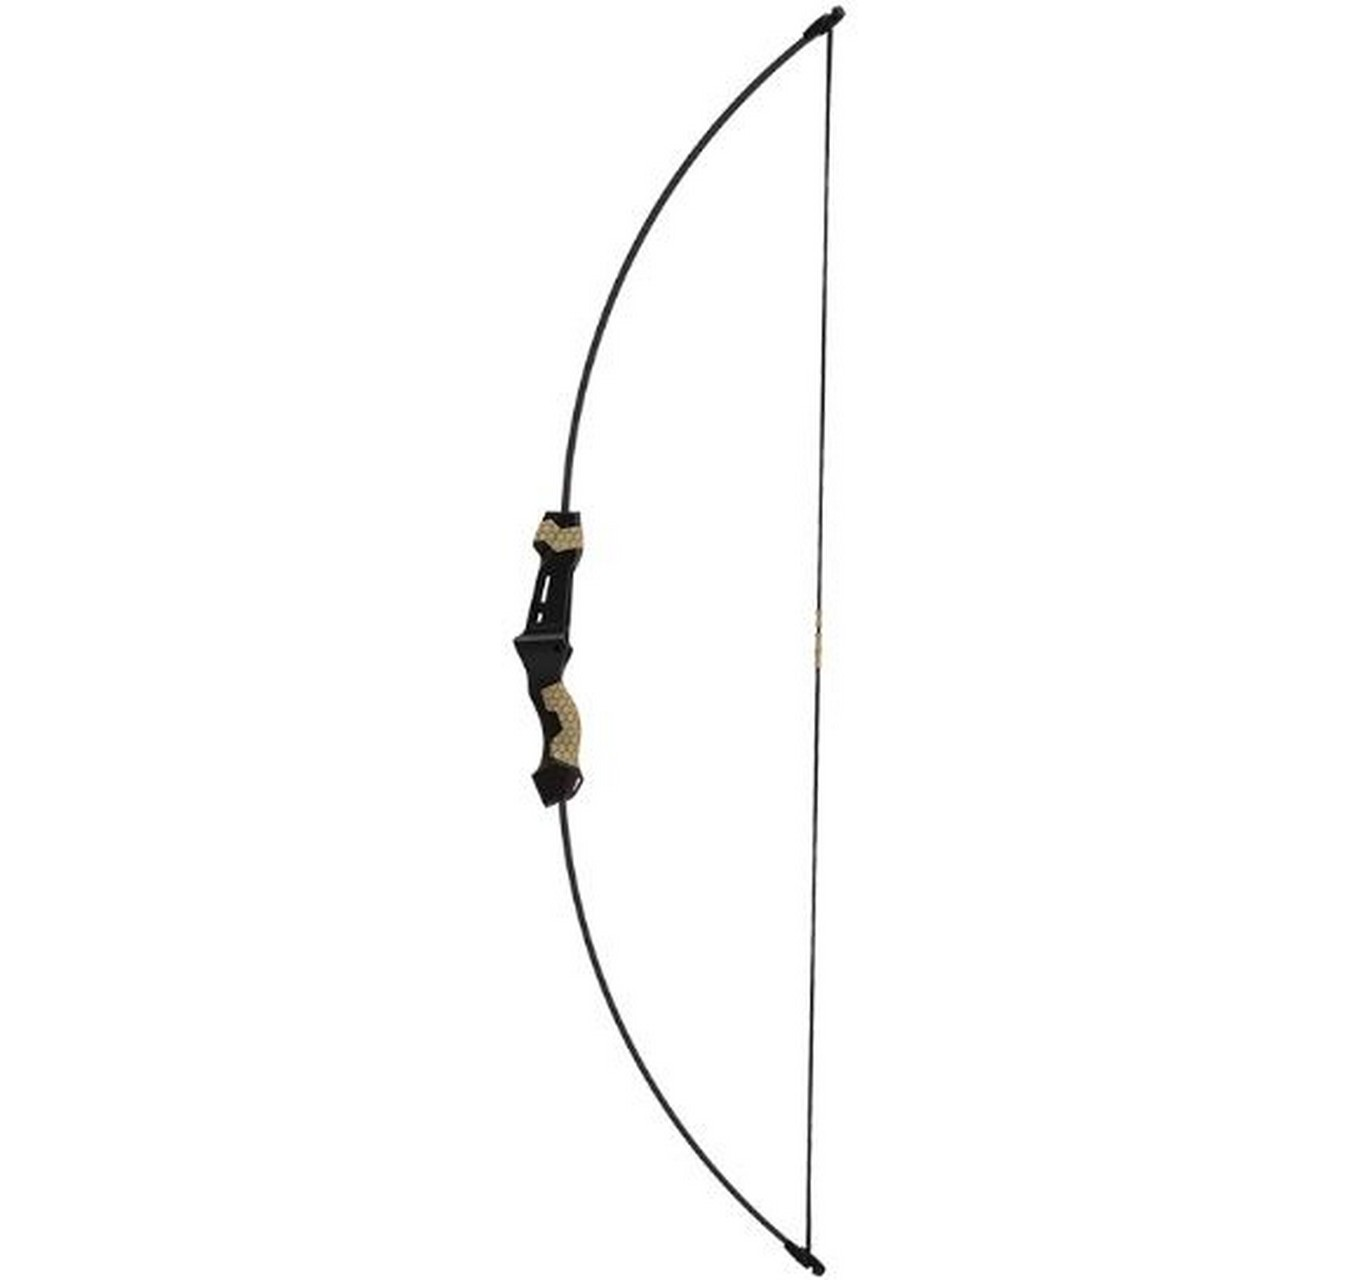 Centreshot Recurve Bow Kit